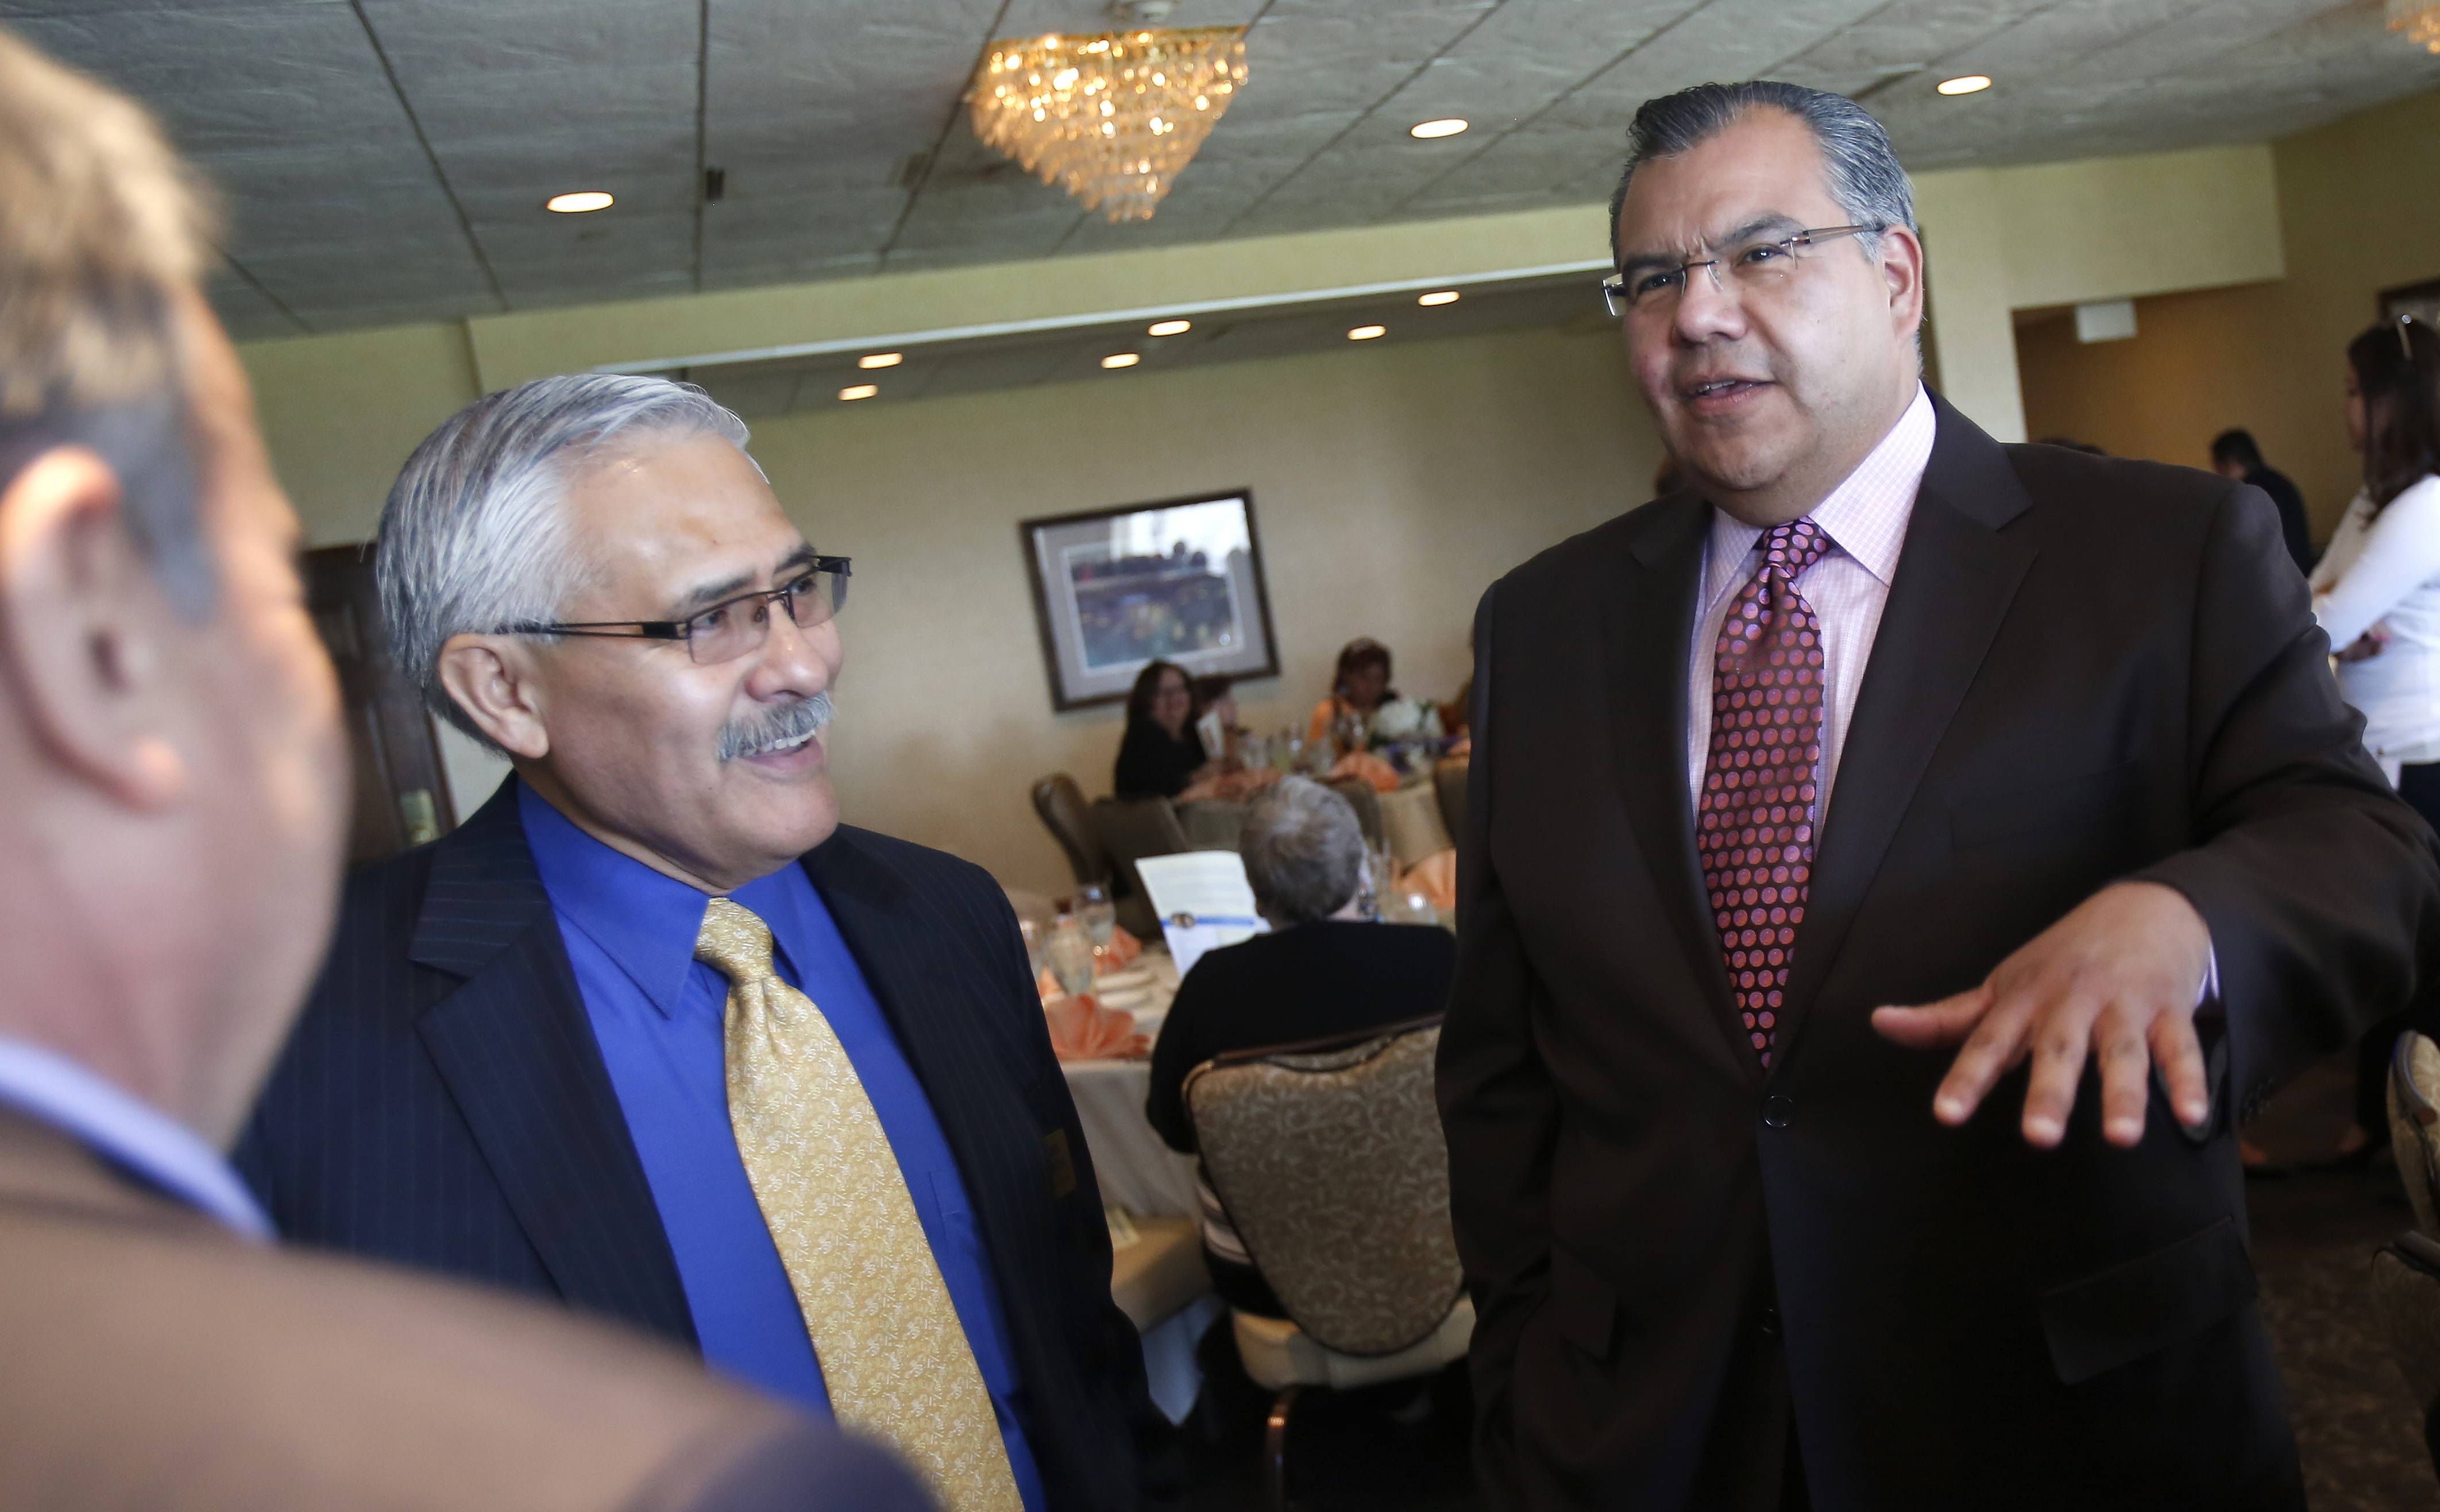 Martin Castro, chairman of the U.S. Commission on Civil Rights, talks to Jamie Garcia, left, executive director of Centro de Informacion, Tuesday at the annual Community Day luncheon benefiting Centro de Informacion at Elgin Country Club.